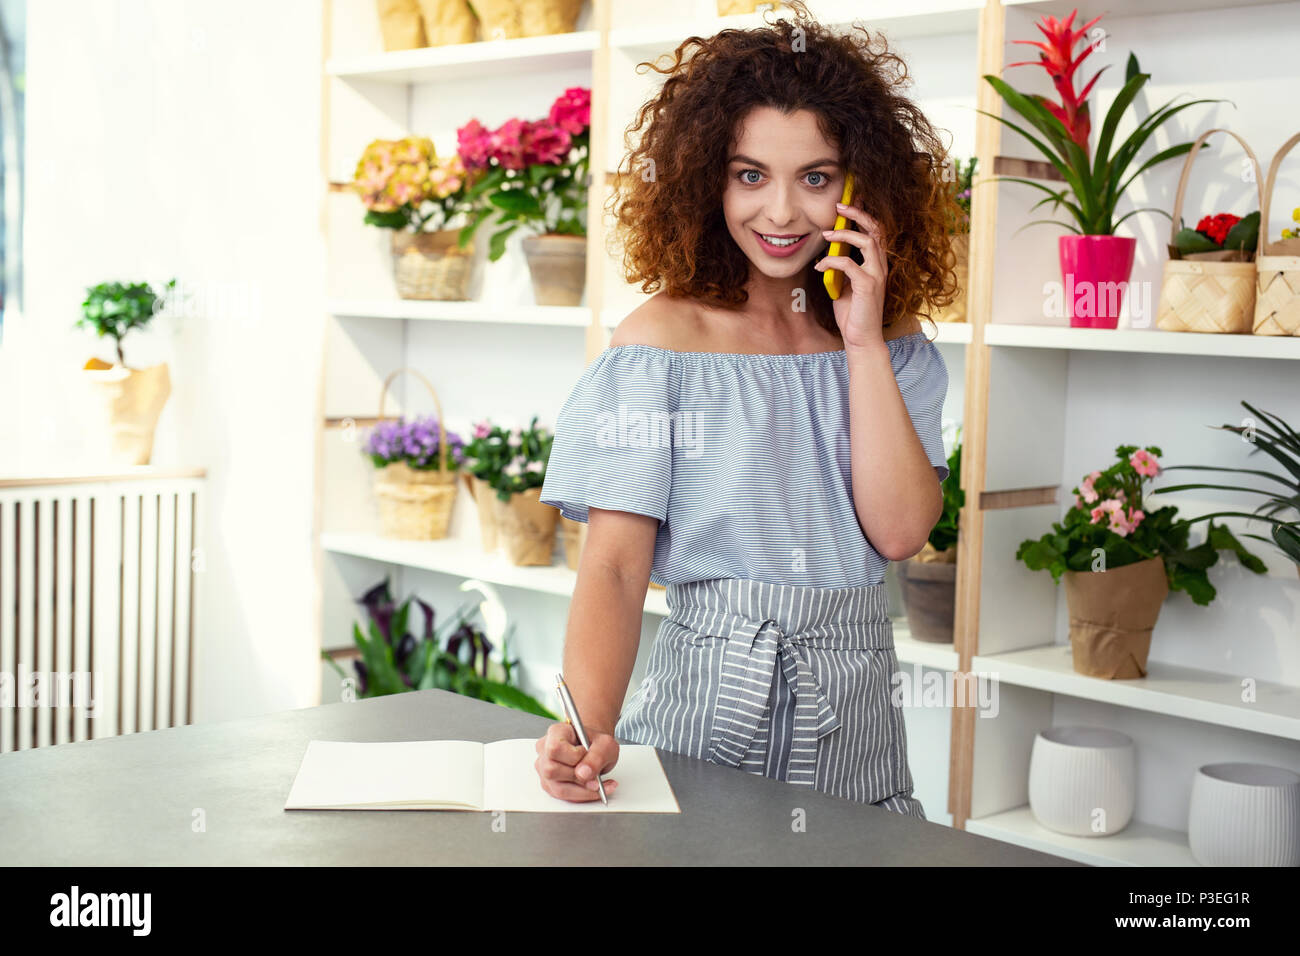 Nice professional businesswoman making a call - Stock Image